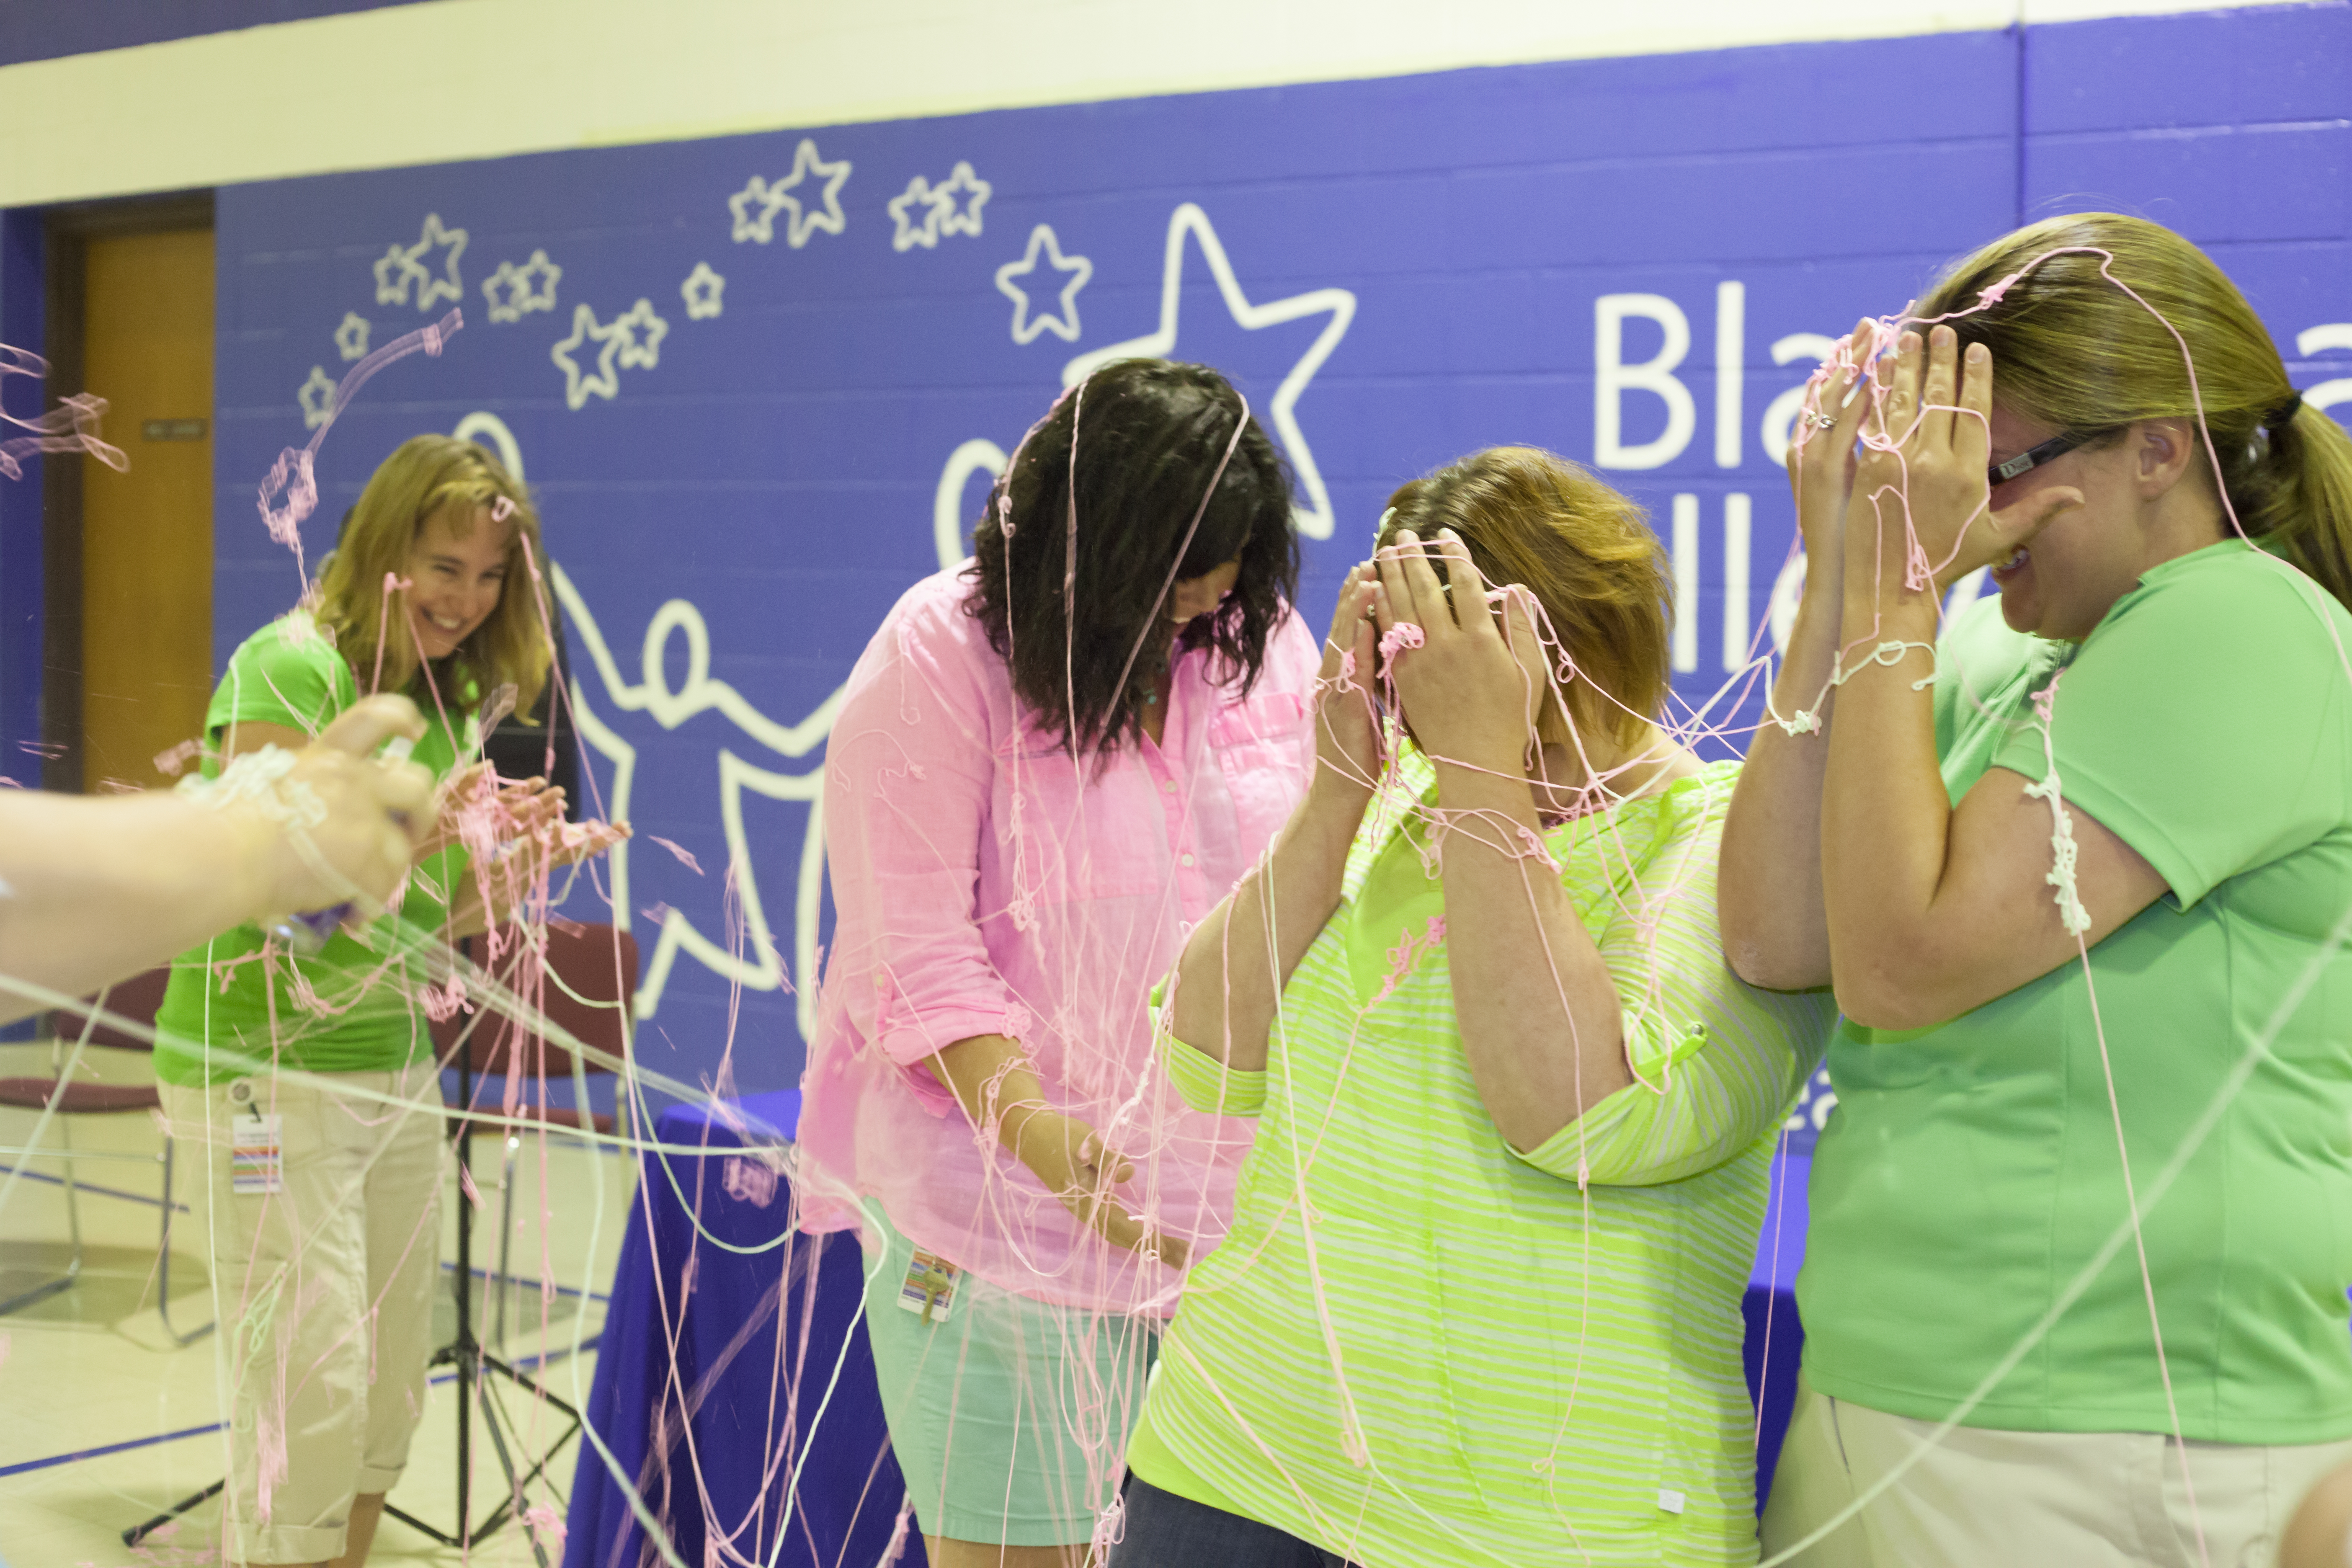 Silly String contest at Blanchard Valley School